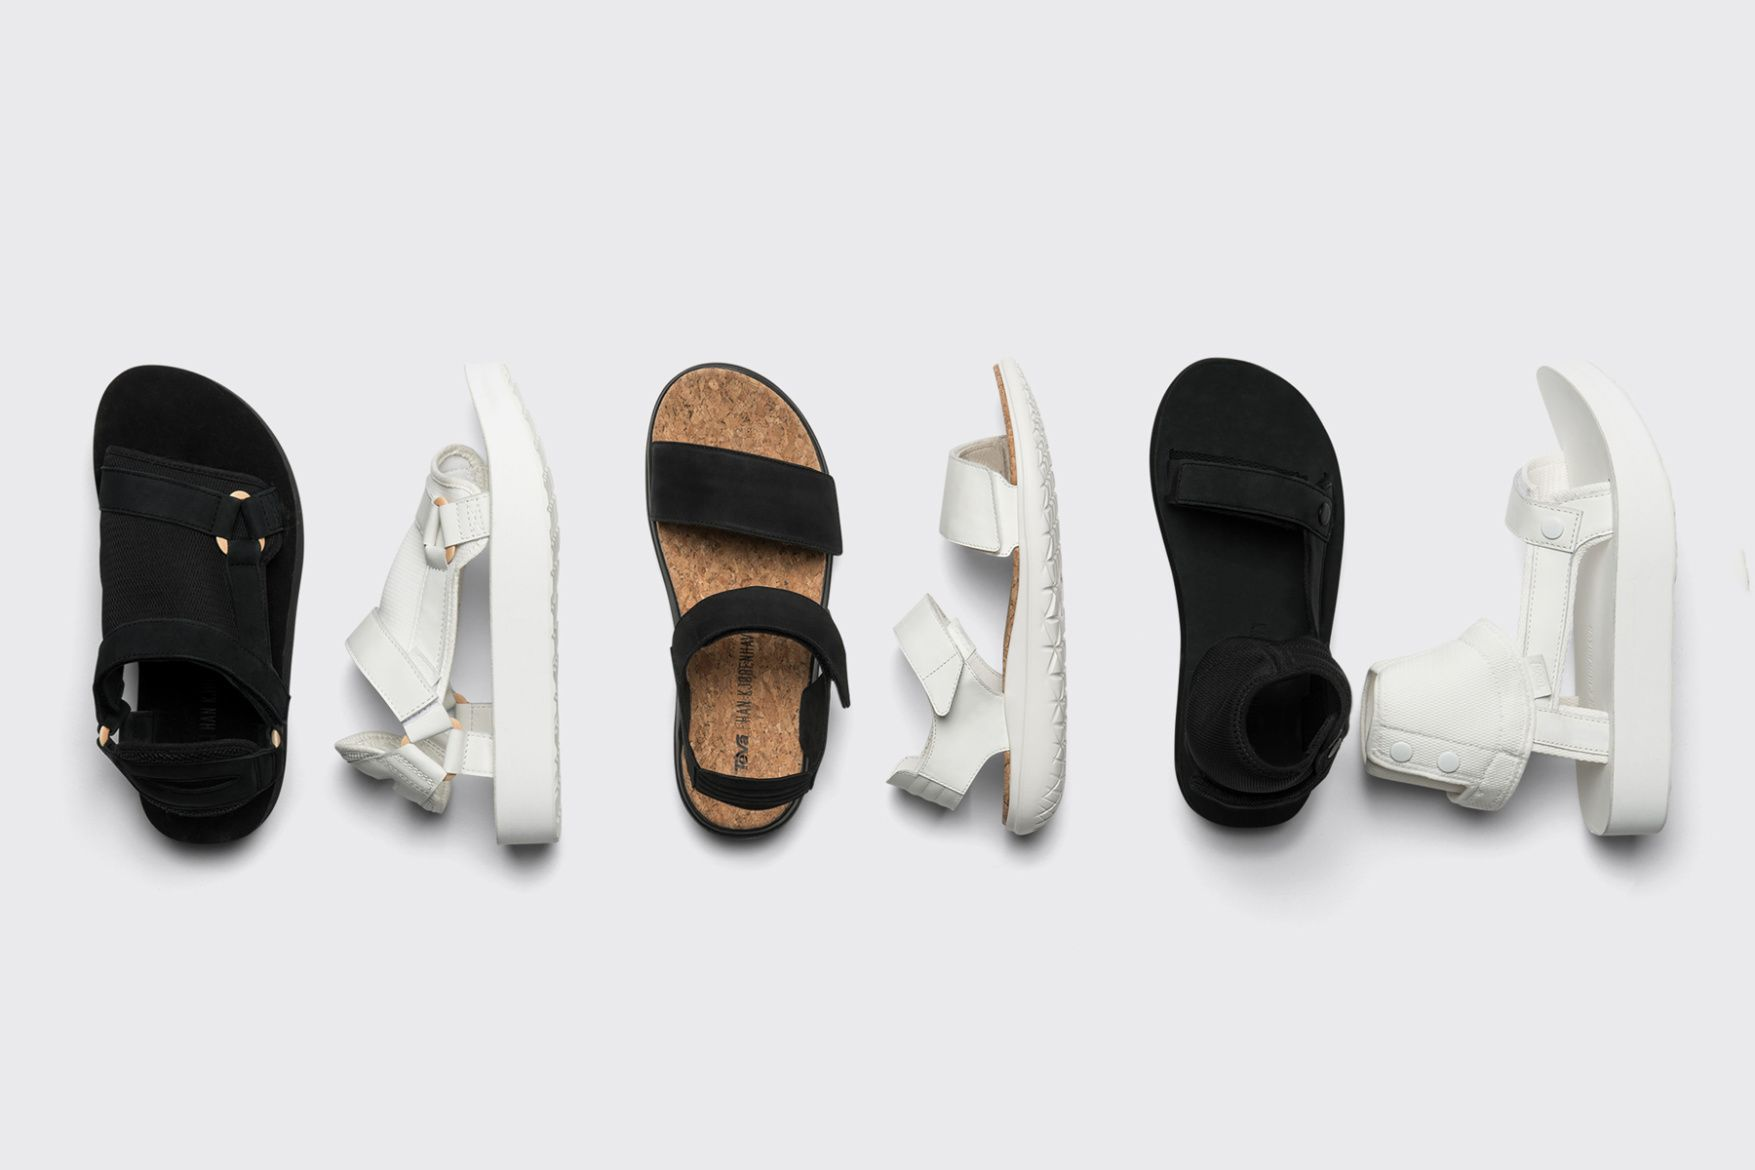 Han Kjøbenhavn and Teva Have Created the Cleanest Sandals for This Summer